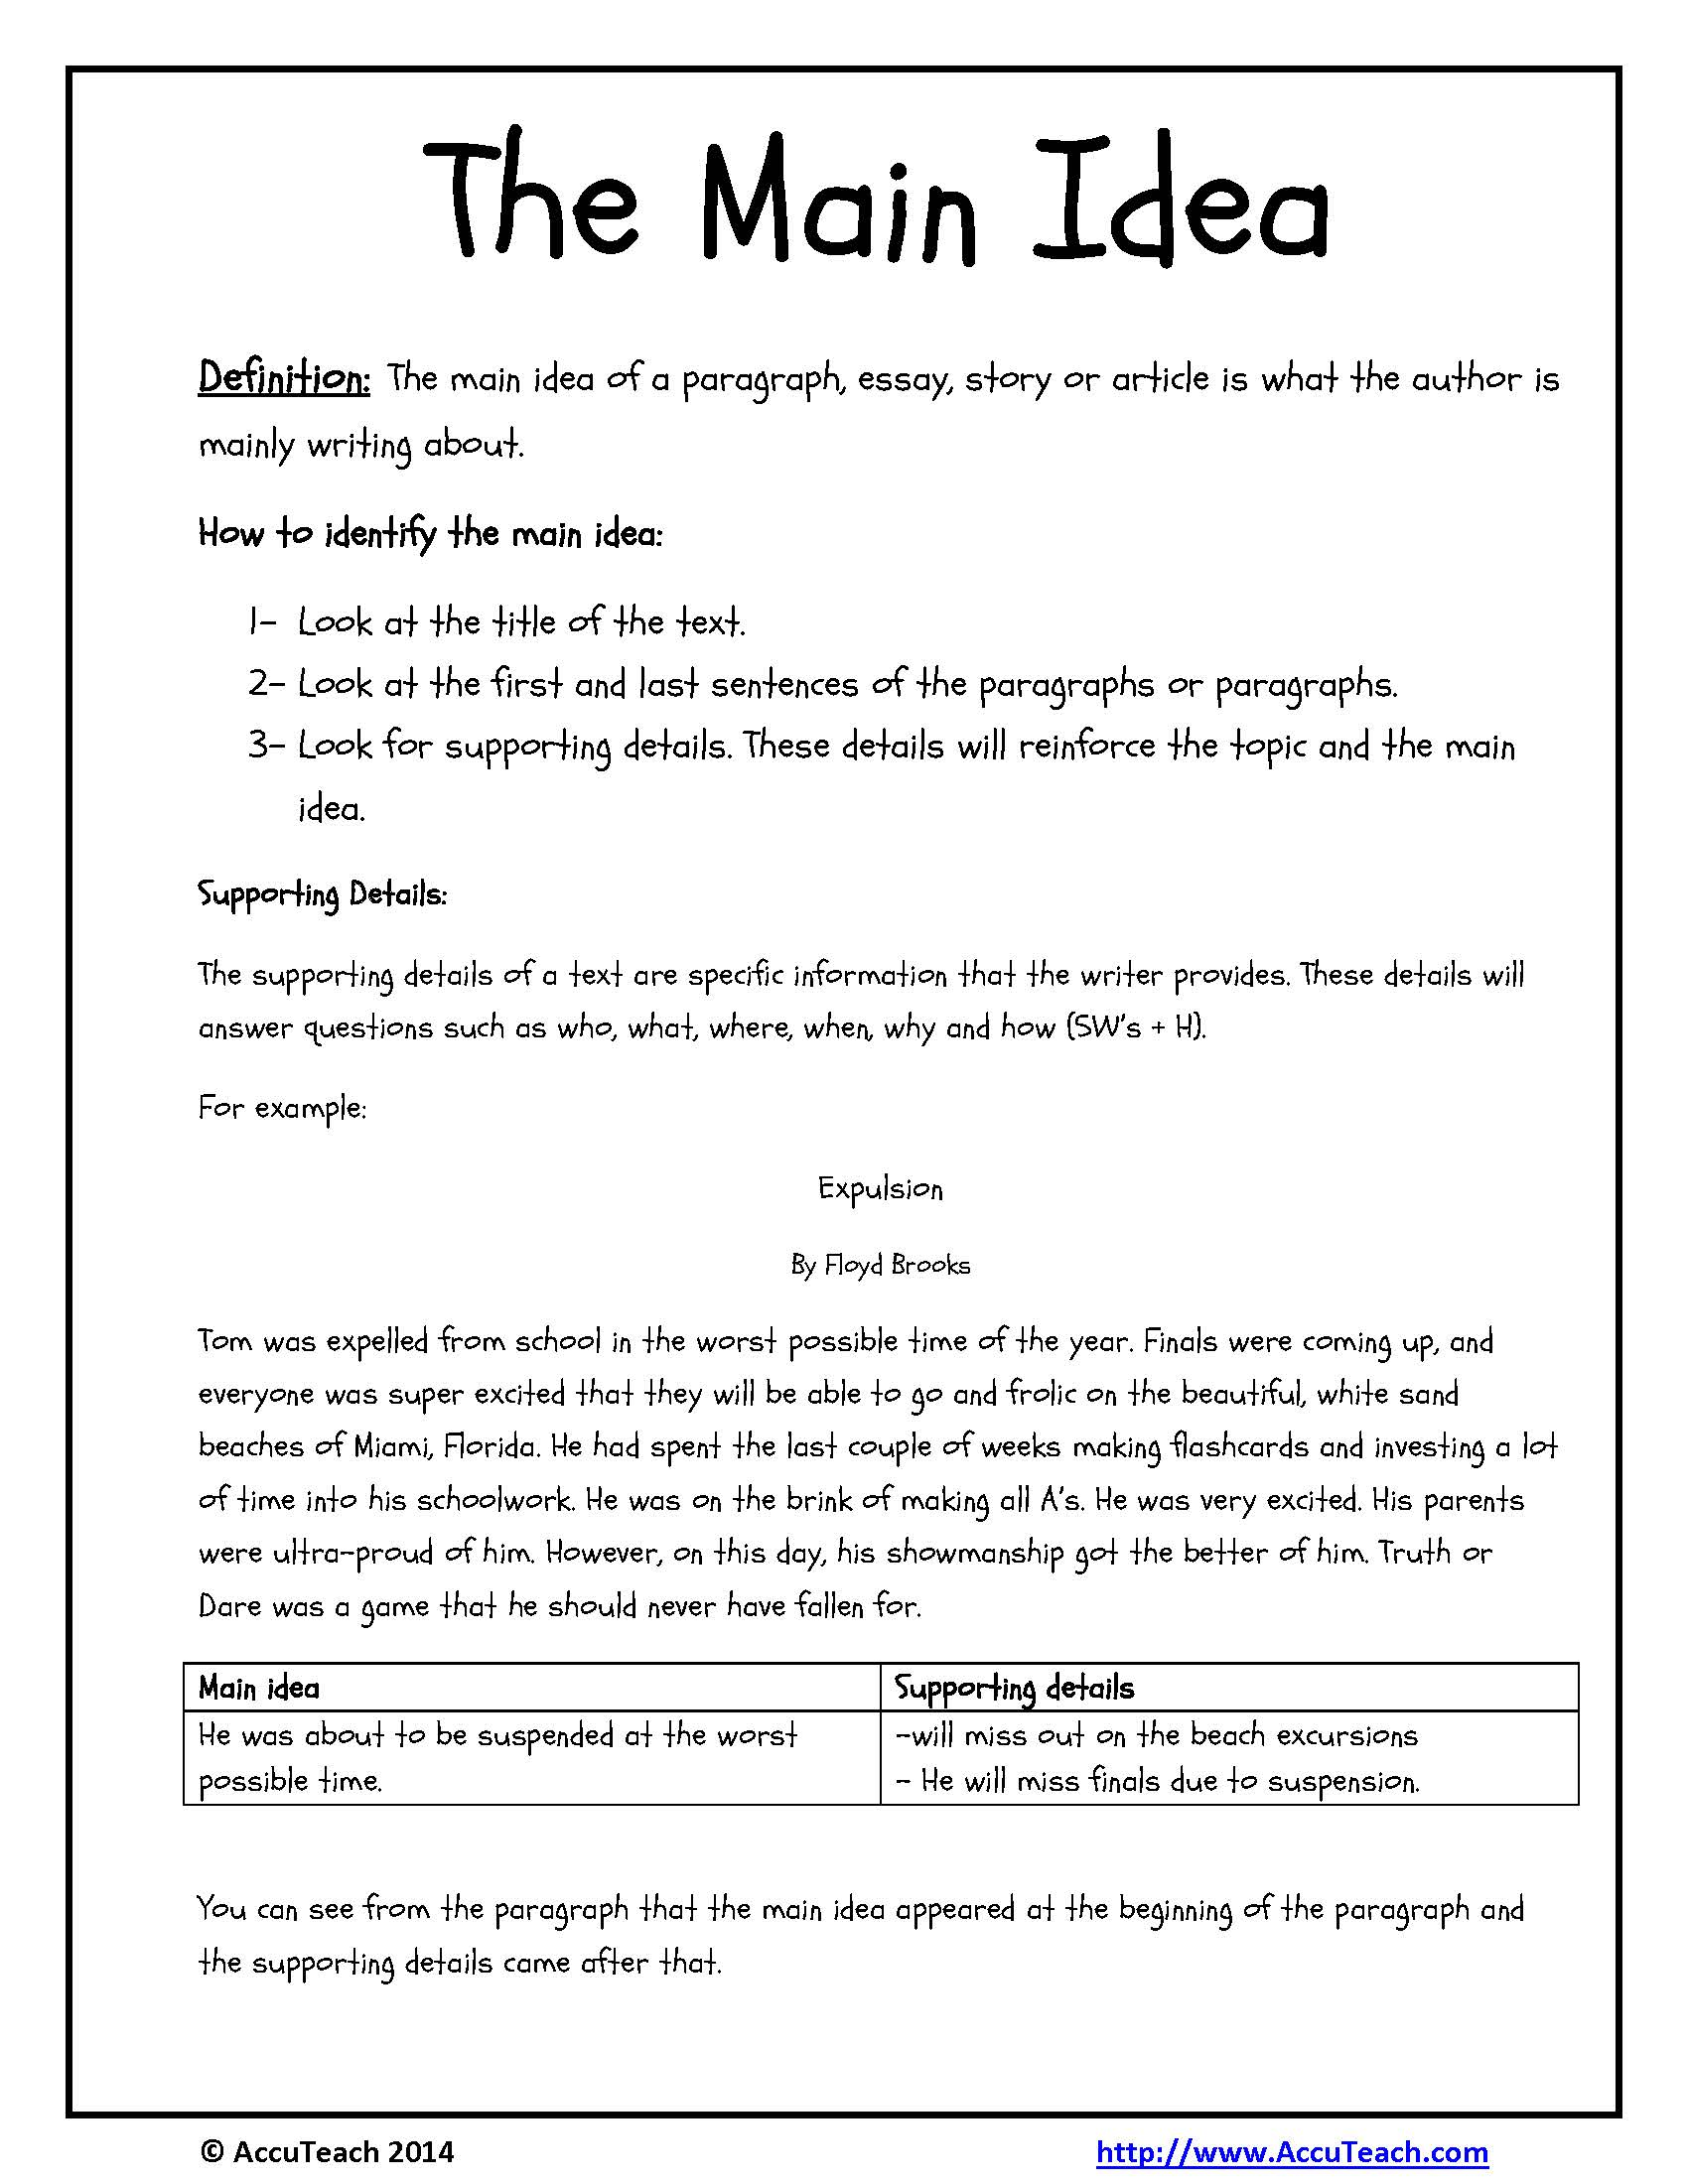 Worksheets Reading Comprehension Strategies Worksheets reading comprehension strategies worksheets free abitlikethis